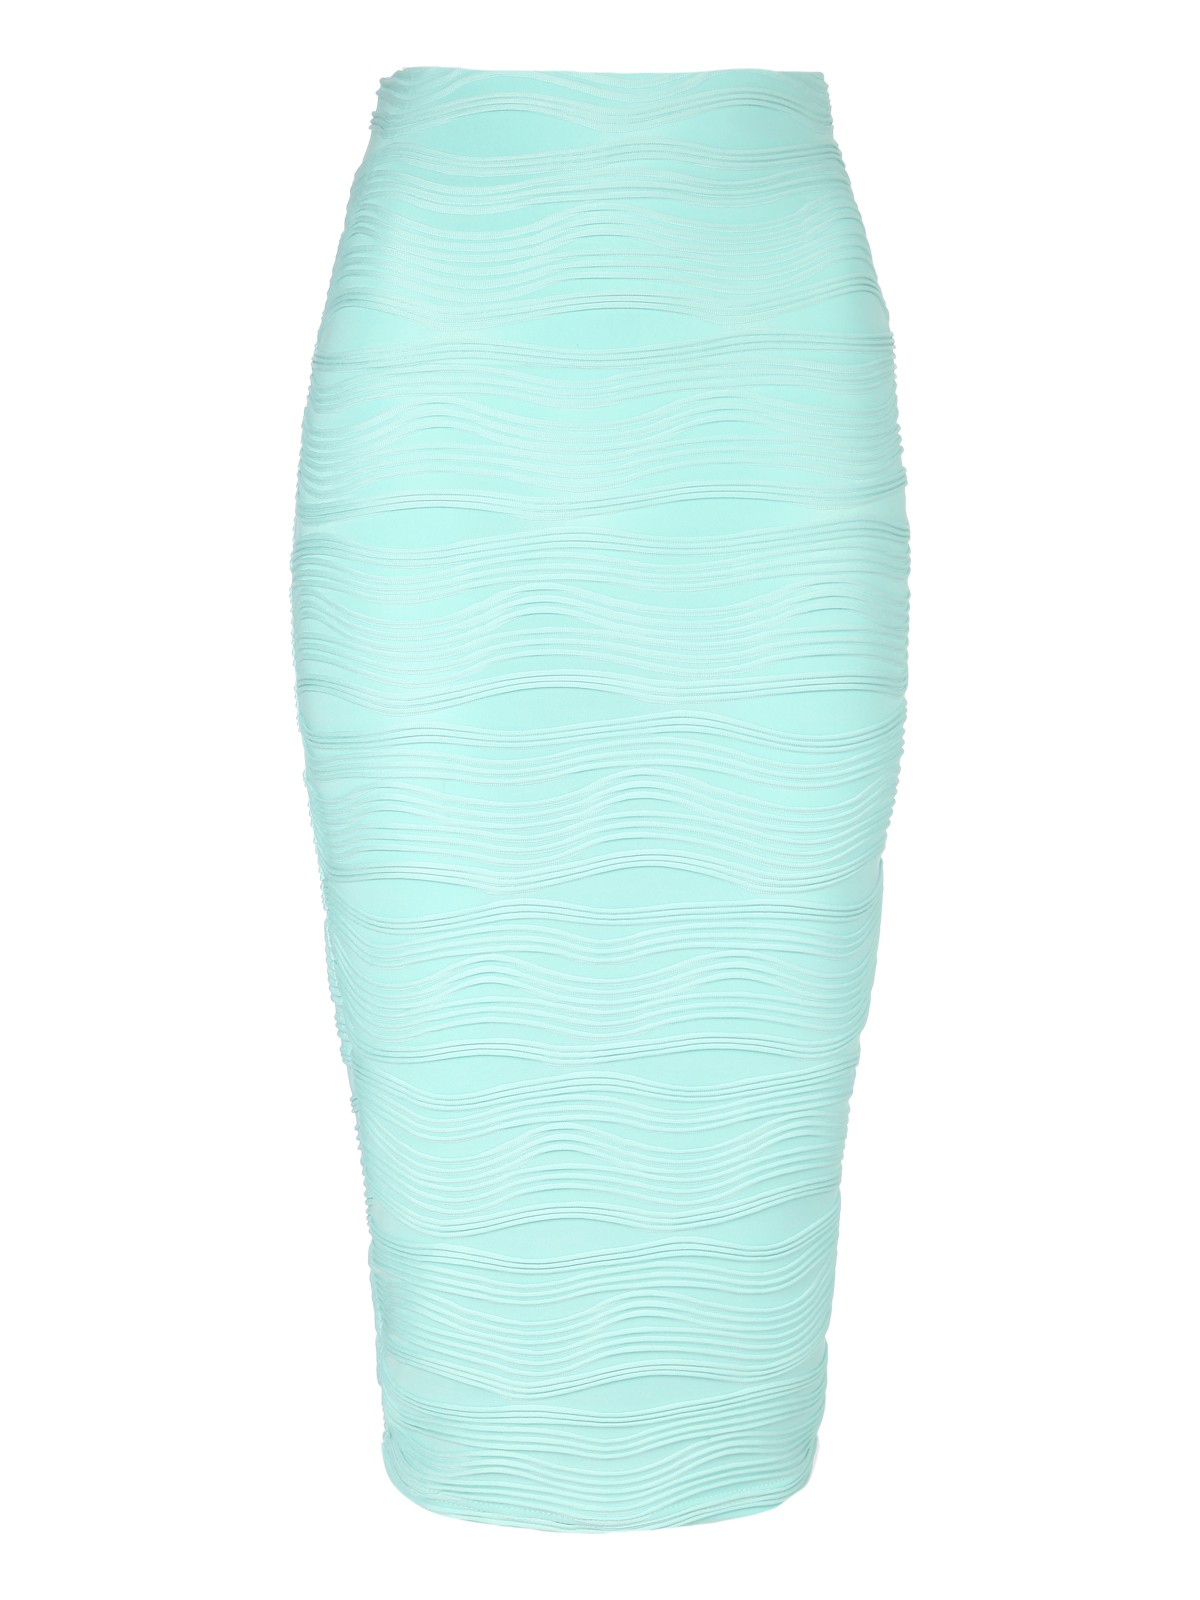 Light Green Pencil Skirt Dress Ala